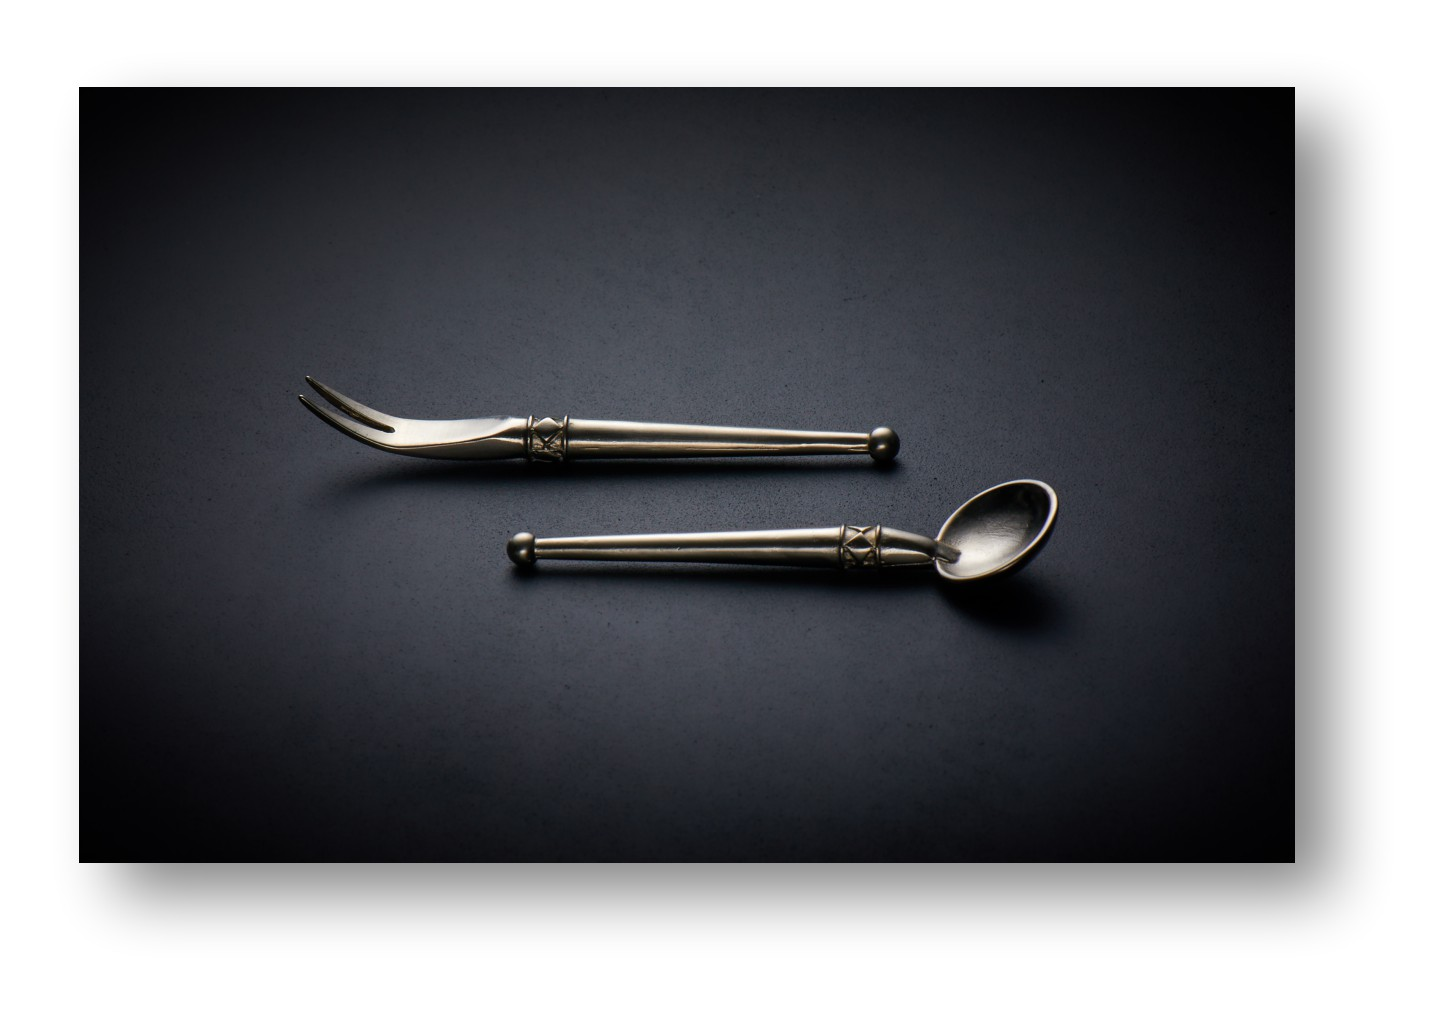 Antique Spoon and Fork with soft light graduated background